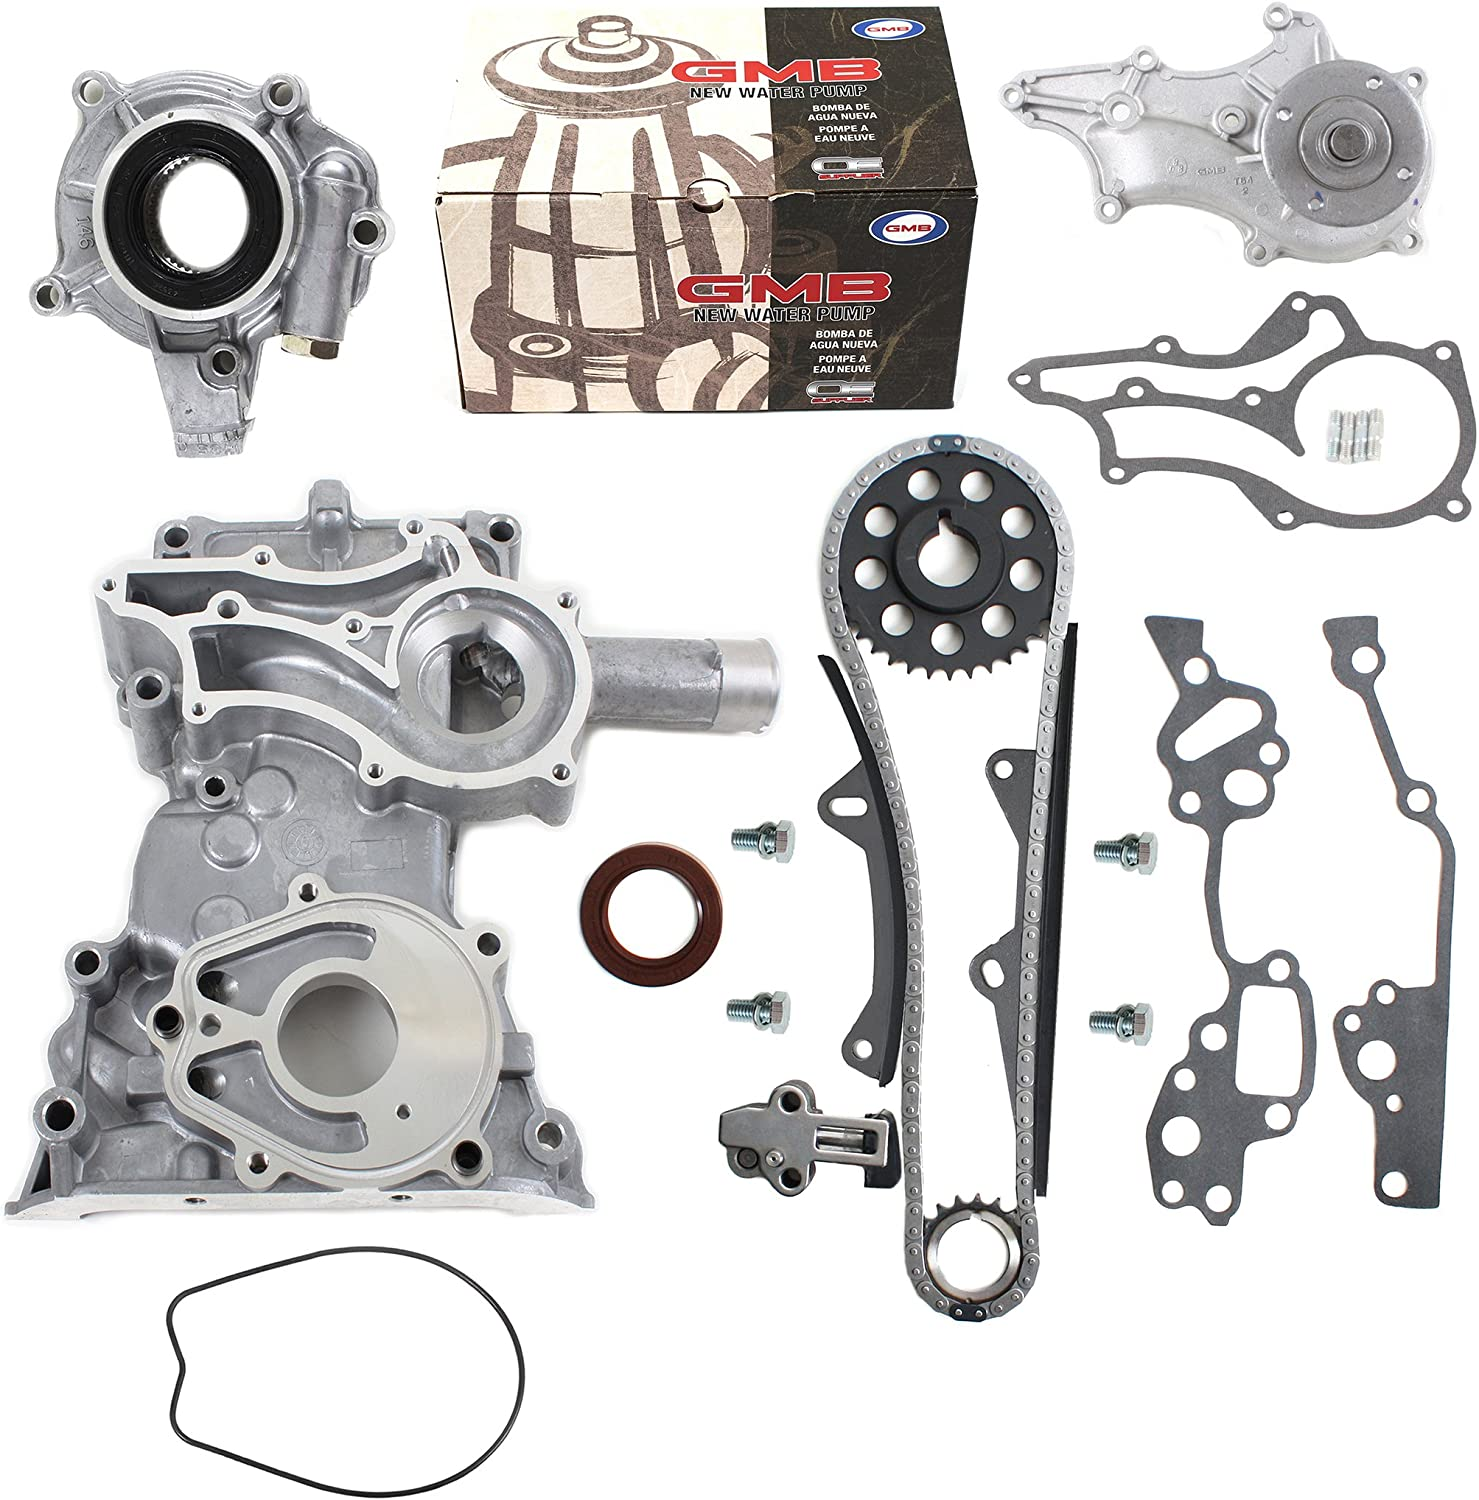 NEW HD Timing Chain Kit (2 Heavy Duty Metal Guides & Bolts) with Timing Cover, Water Pump, Oil Pump compatible with 85-95 Toyota 2.4L 4Runner Pickup Celica SOHC engine 22R 22RE 22REC